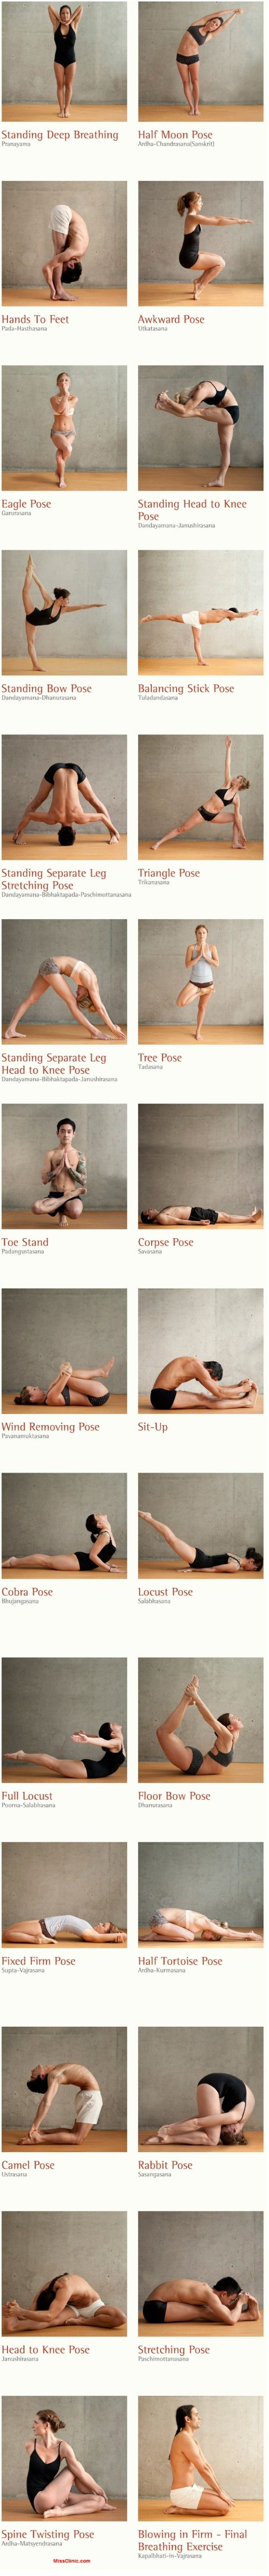 26 Healthy Yoga Postures. Want to do all of them, I bet they make you feel amazing.